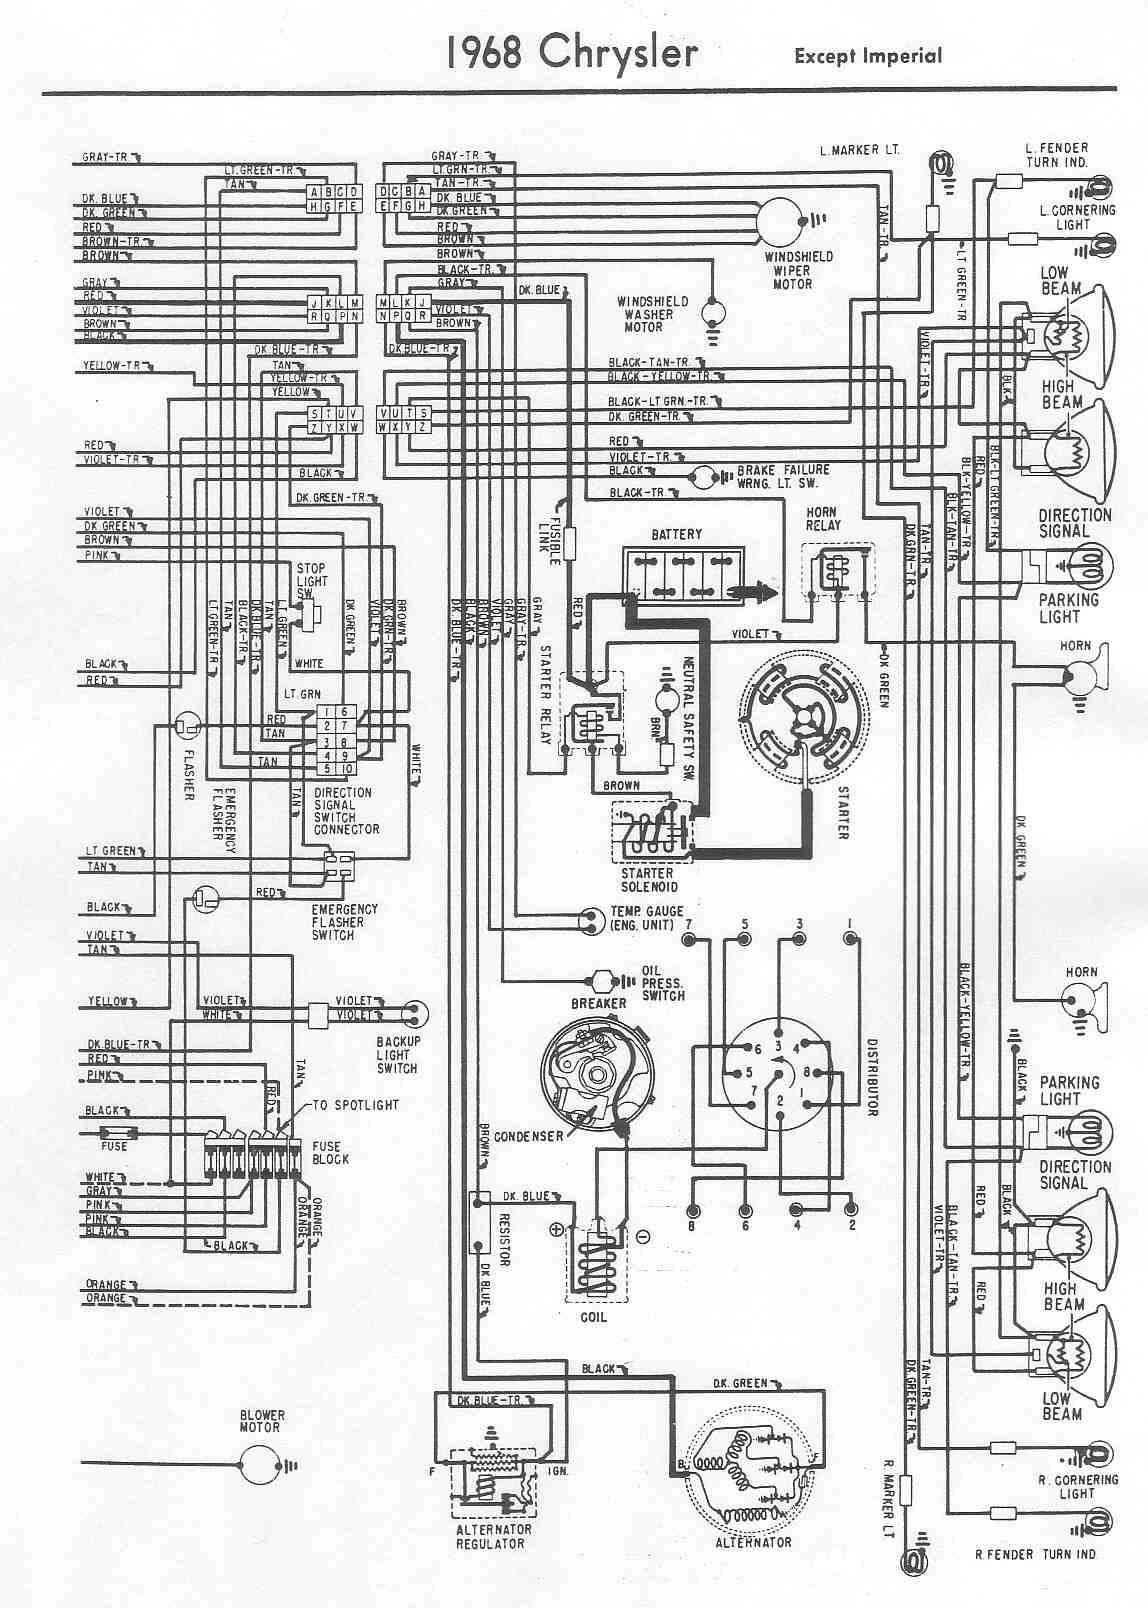 1951 imperial wiring diagram wiring diagram u2022 rh tinyforge co 70 Imperial 72 Imperial